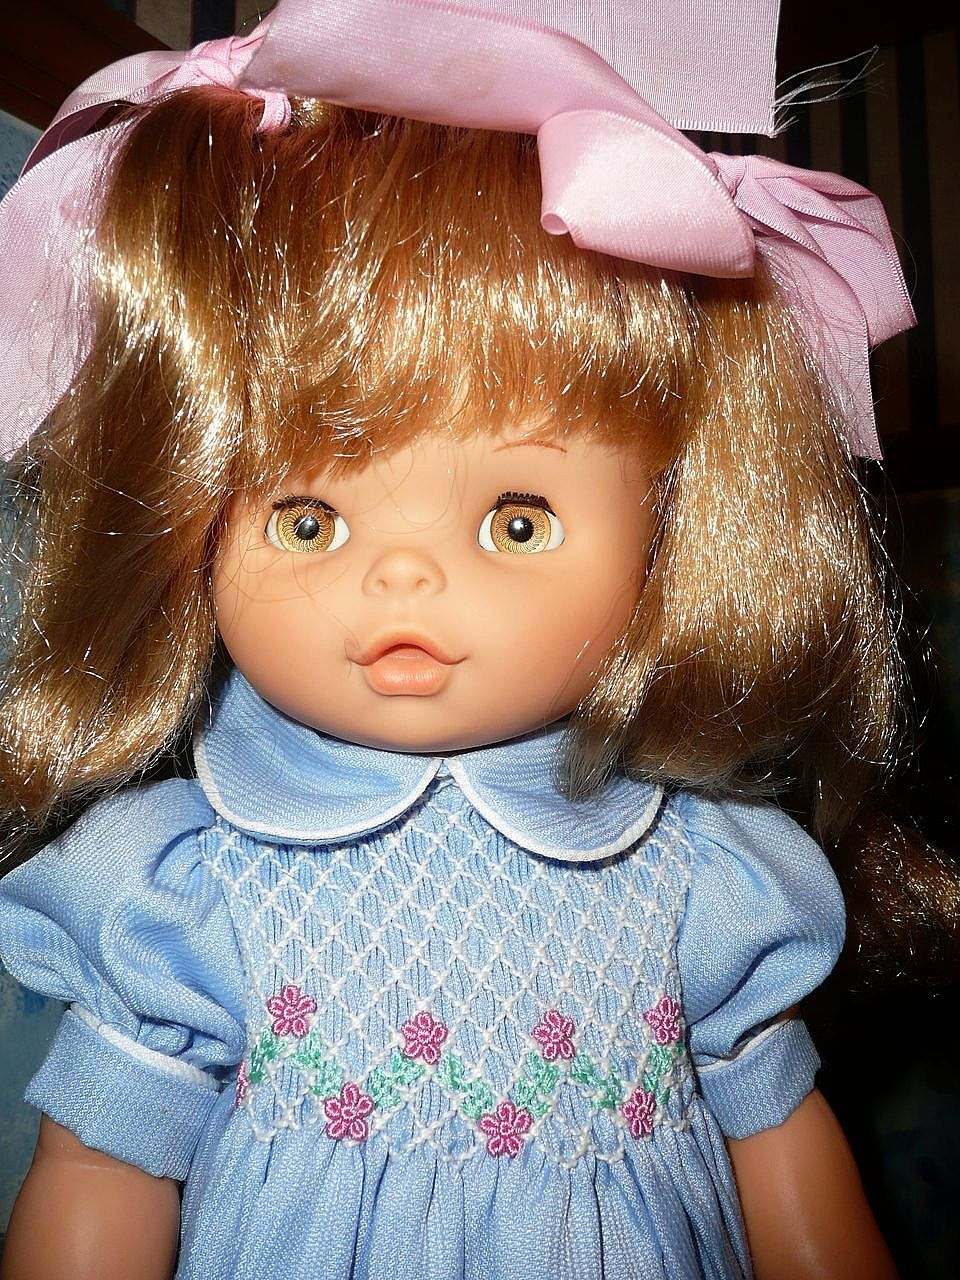 Beautiful 1976 'Famosa' 18&quot; Doll from Spain